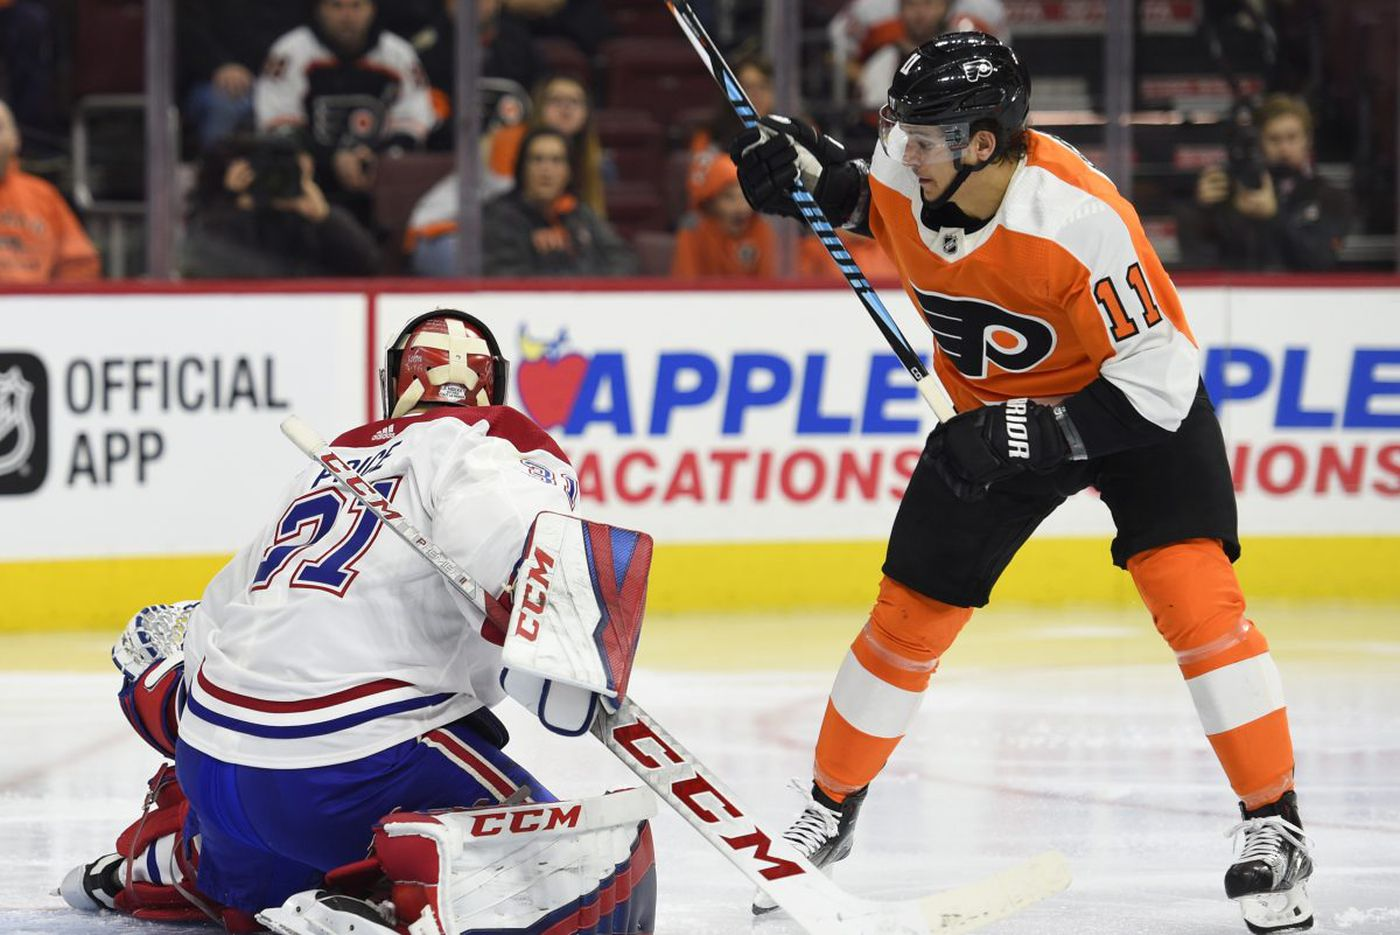 Flyers defeat Canadiens, 5-3, on night Eagles are celebrated